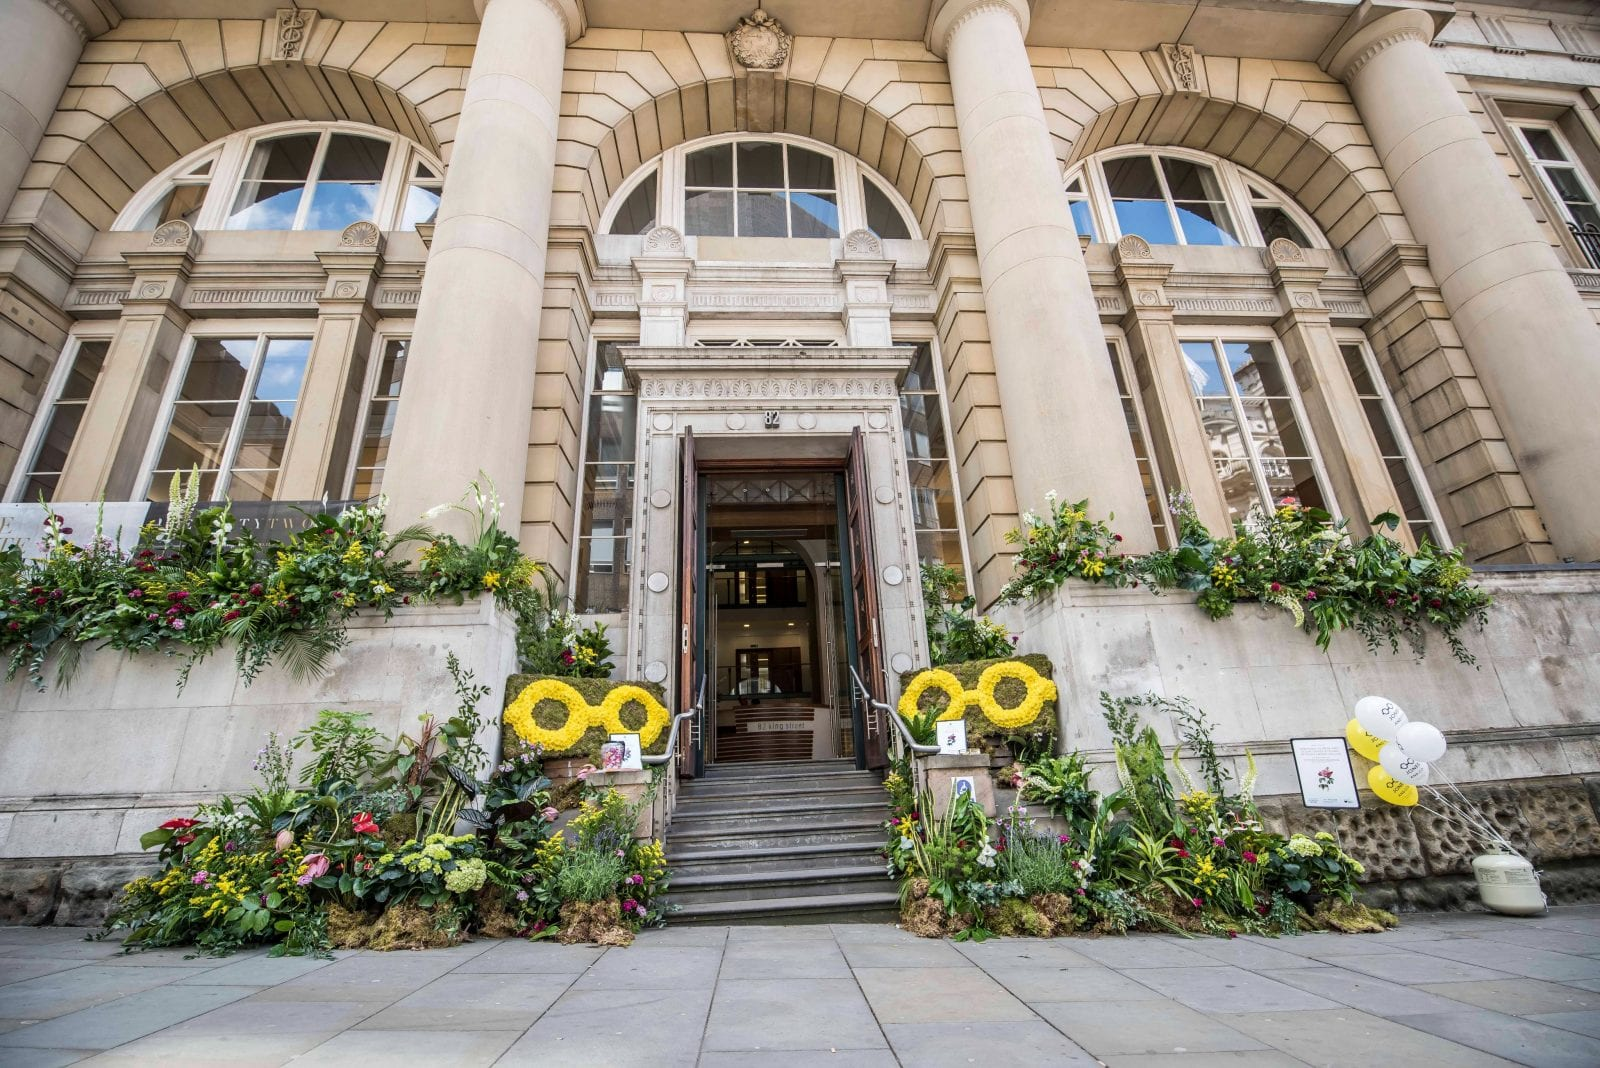 The streets of Manchester city centre will be filled with flower sculptures this summer, The Manc